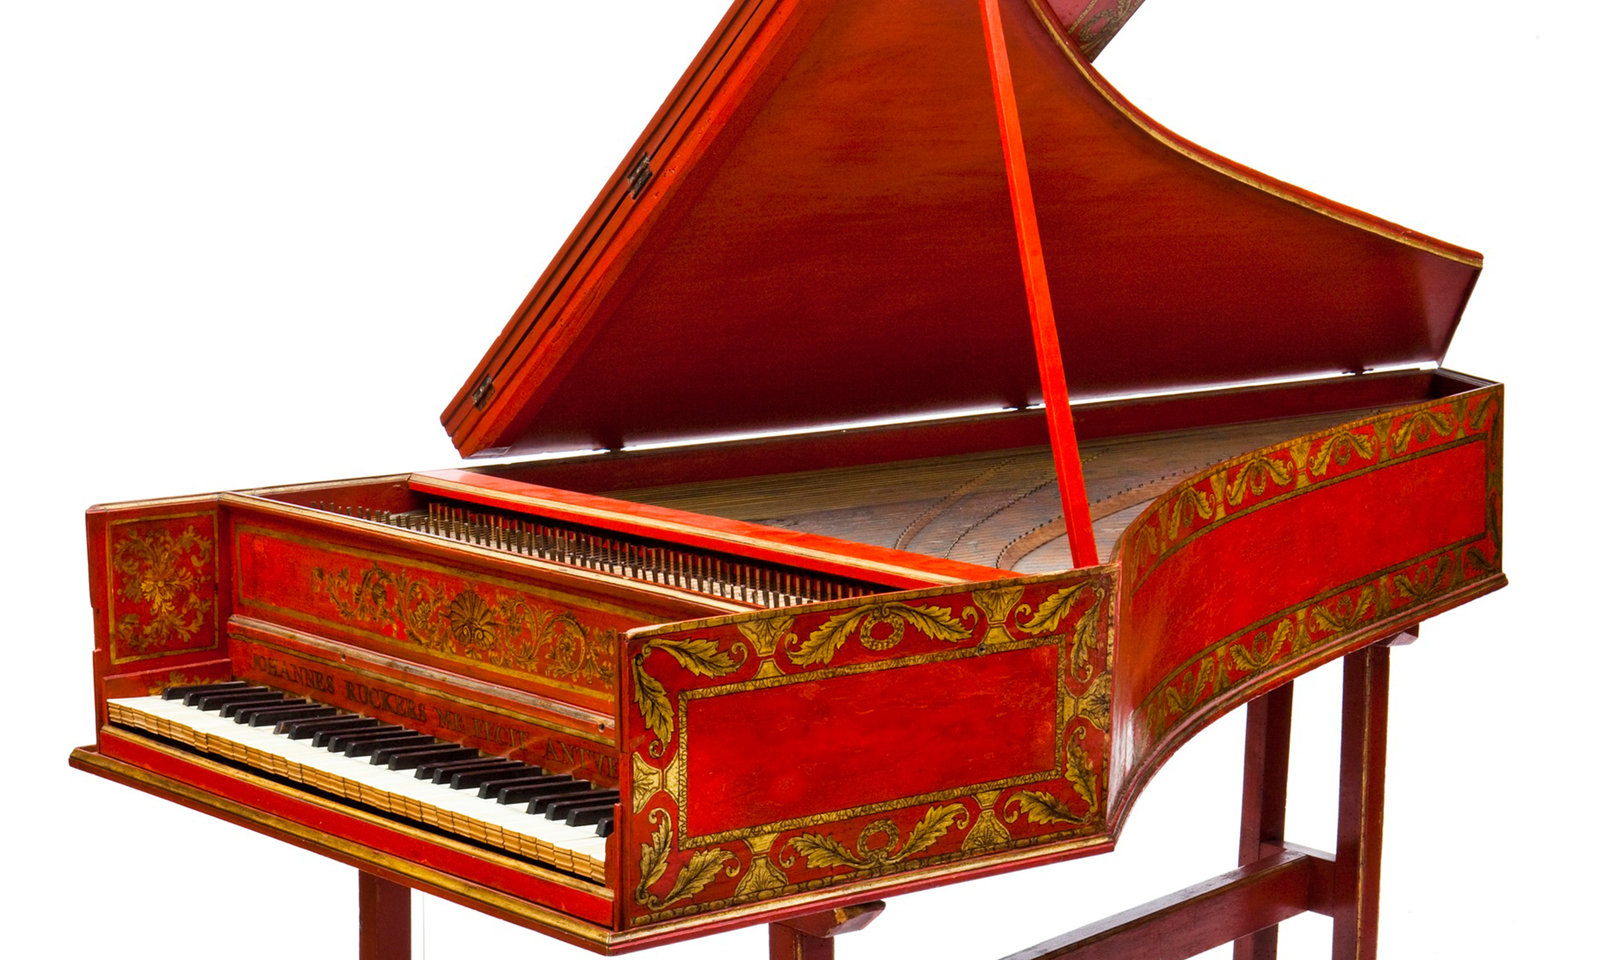 Harpsichord Red, Ioannes Ruckers, University of Edinburgh , CC BY-NC-SA